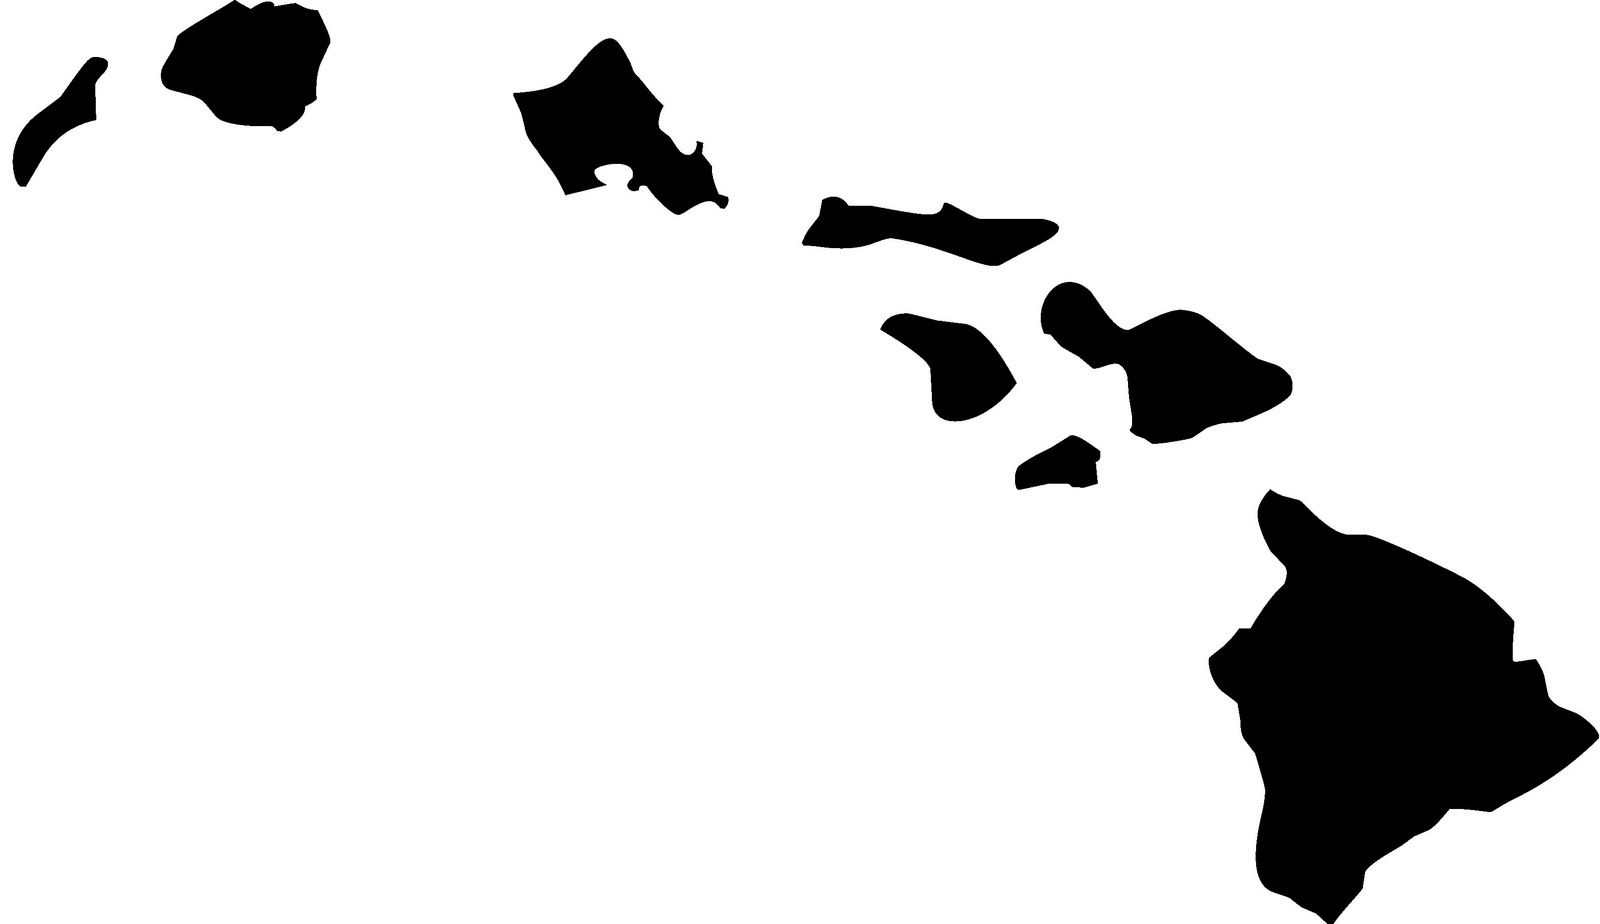 17 Hawaiian Islands Vector Images